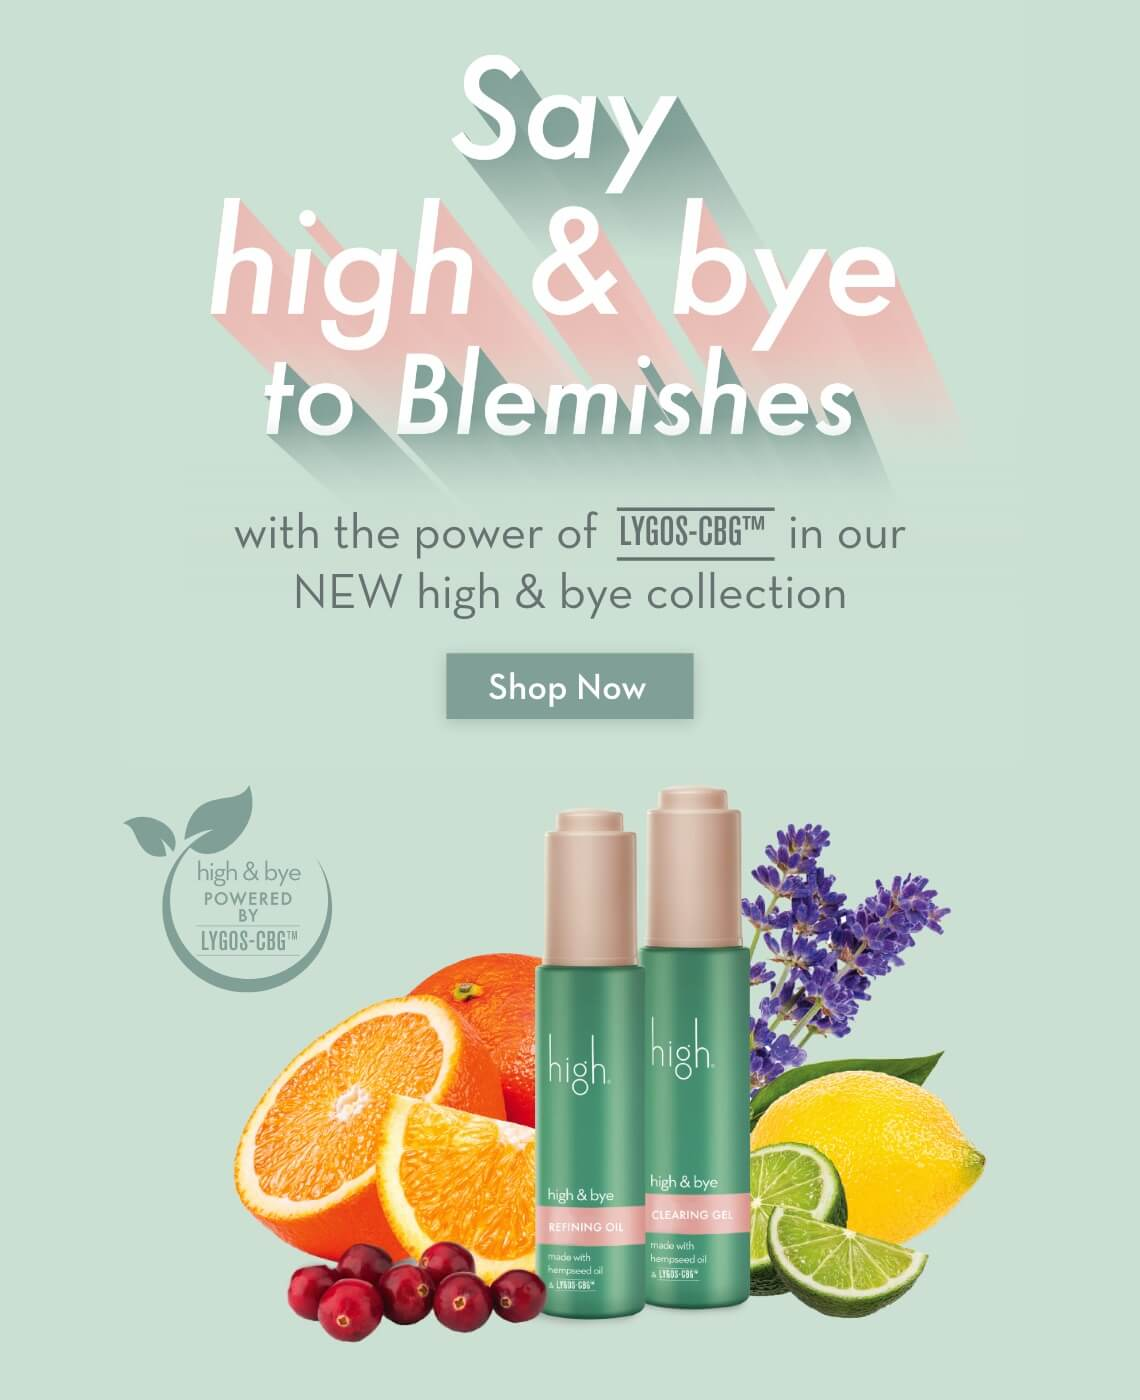 Say high & bye to blemishes with high & bye!